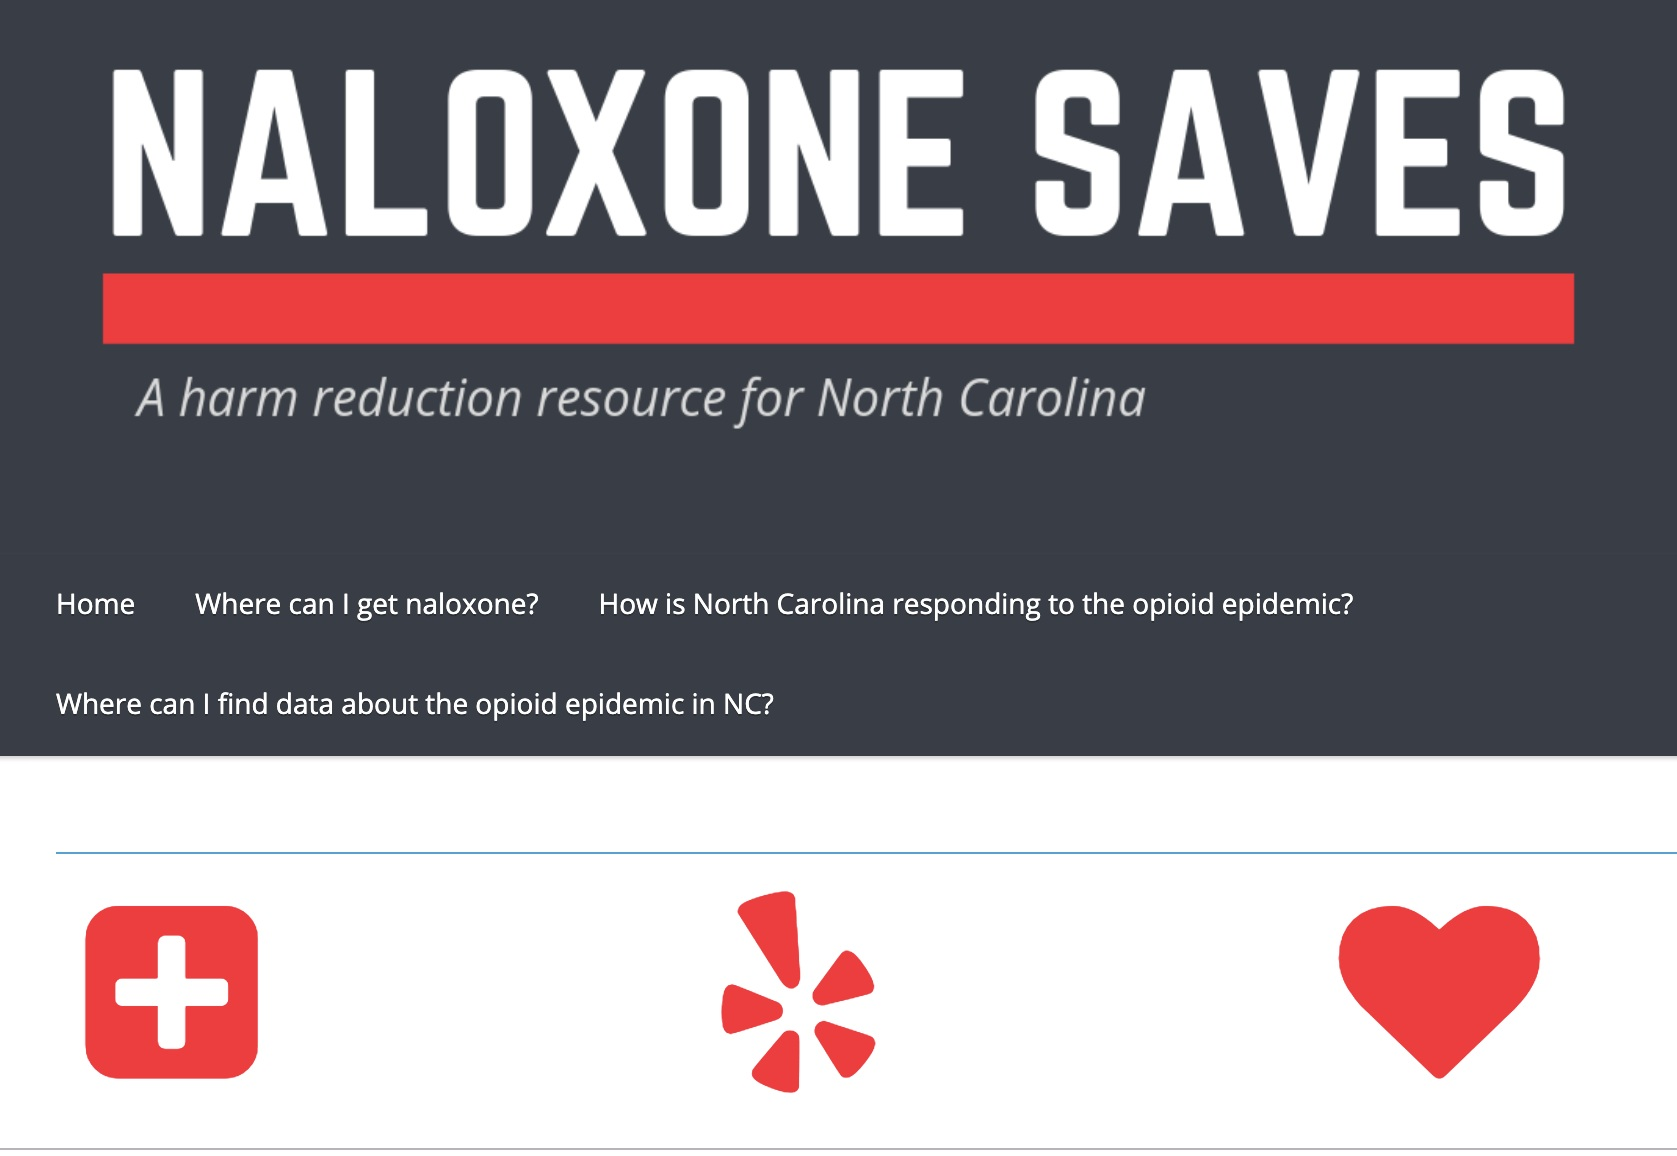 naloxone saves - Naloxone Saves is a comprehensive resource site for overdose prevention and naloxone access in North Carolina. The site includes information about naloxone access through pharmacies, health departments, and syringe exchange programs.